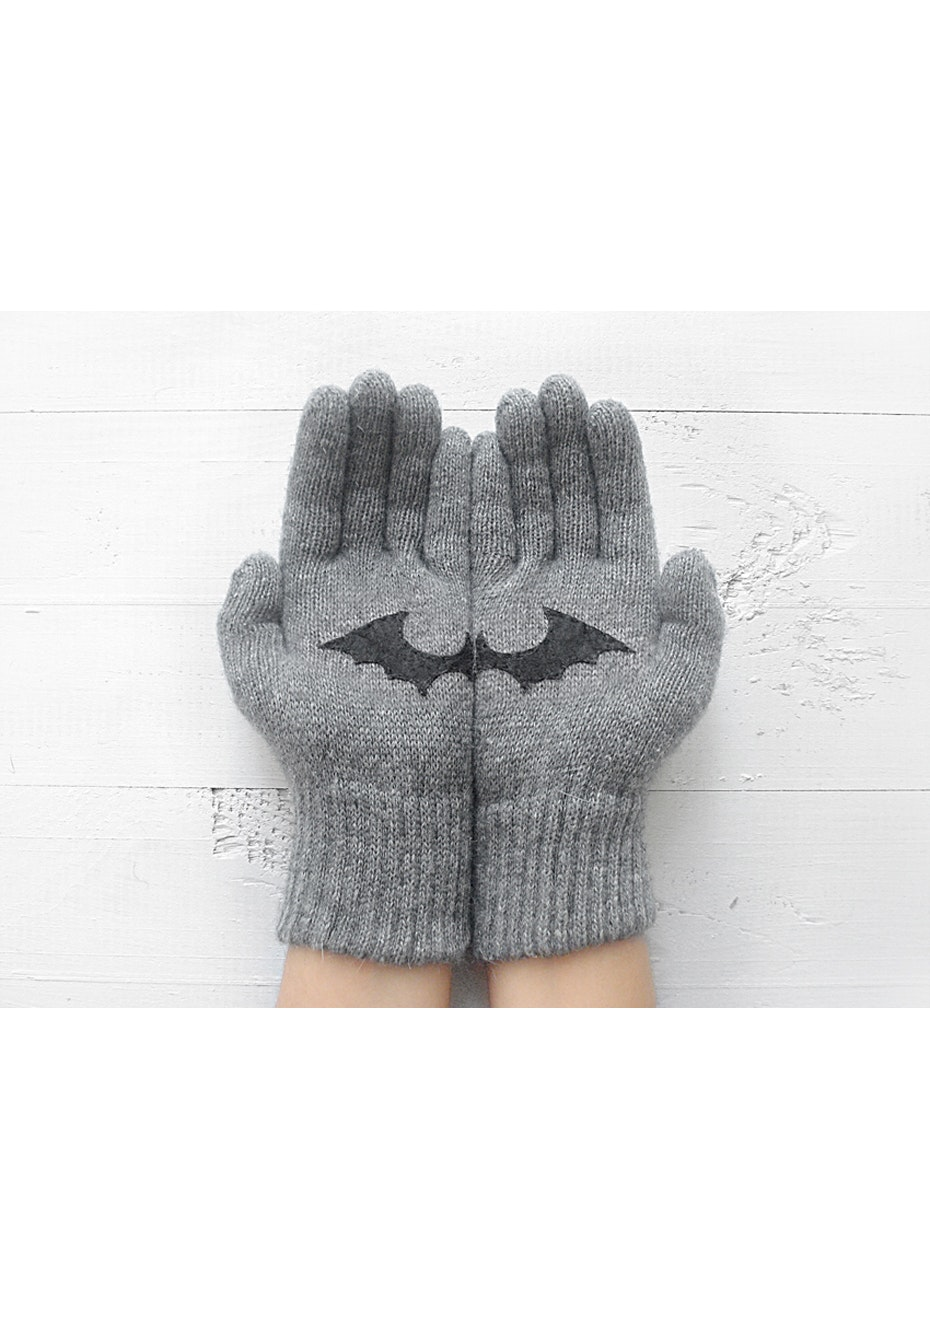 Bat Gloves - Grey/Black